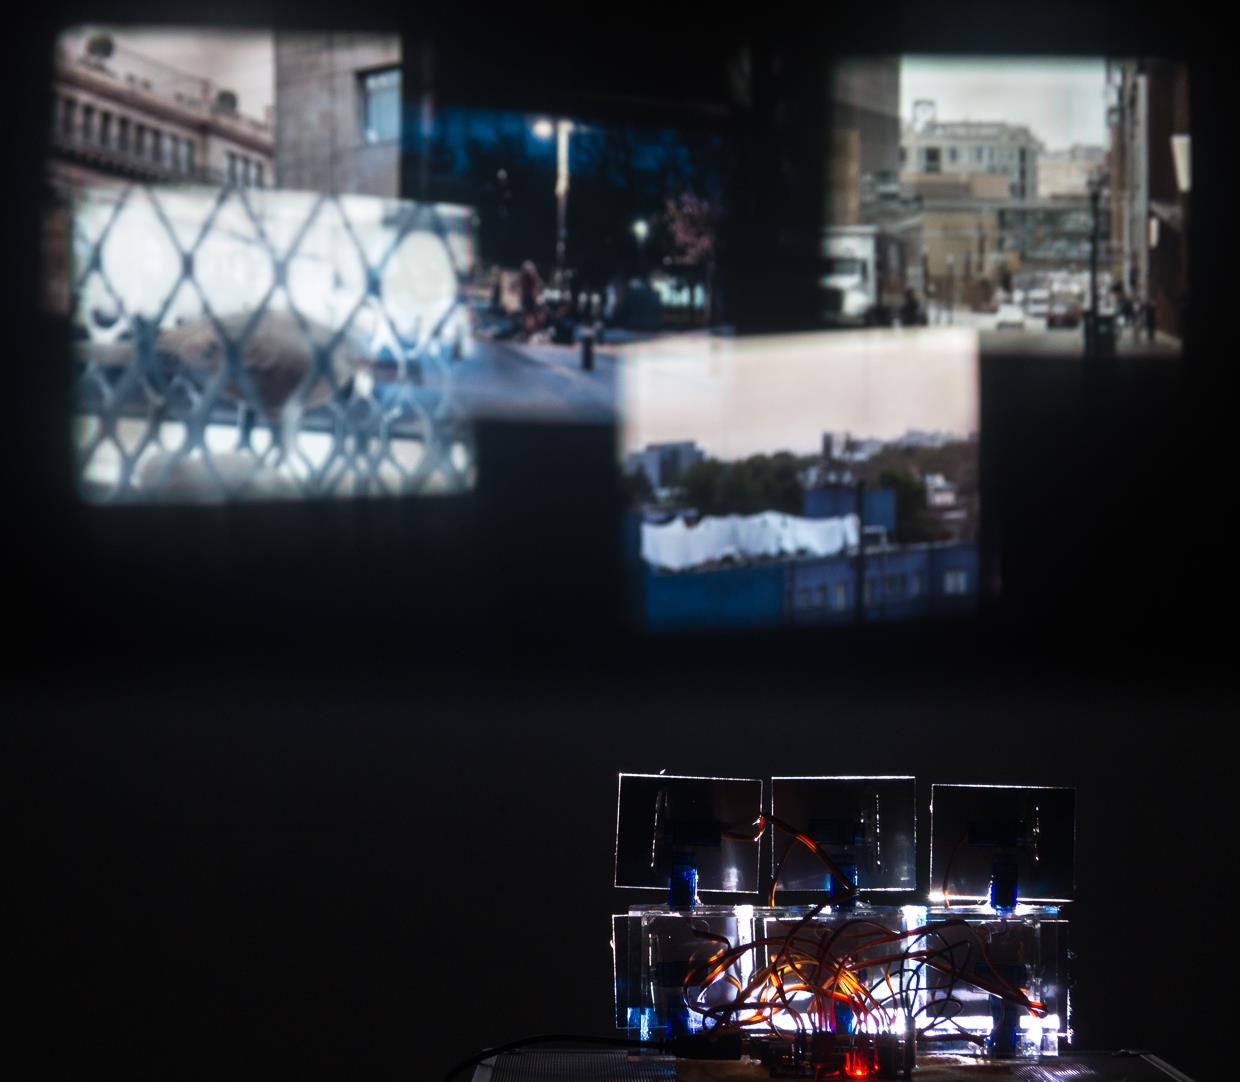 Twelve servo motors distribute one six video projection into sections causing them to separate and overlap at different randomiz